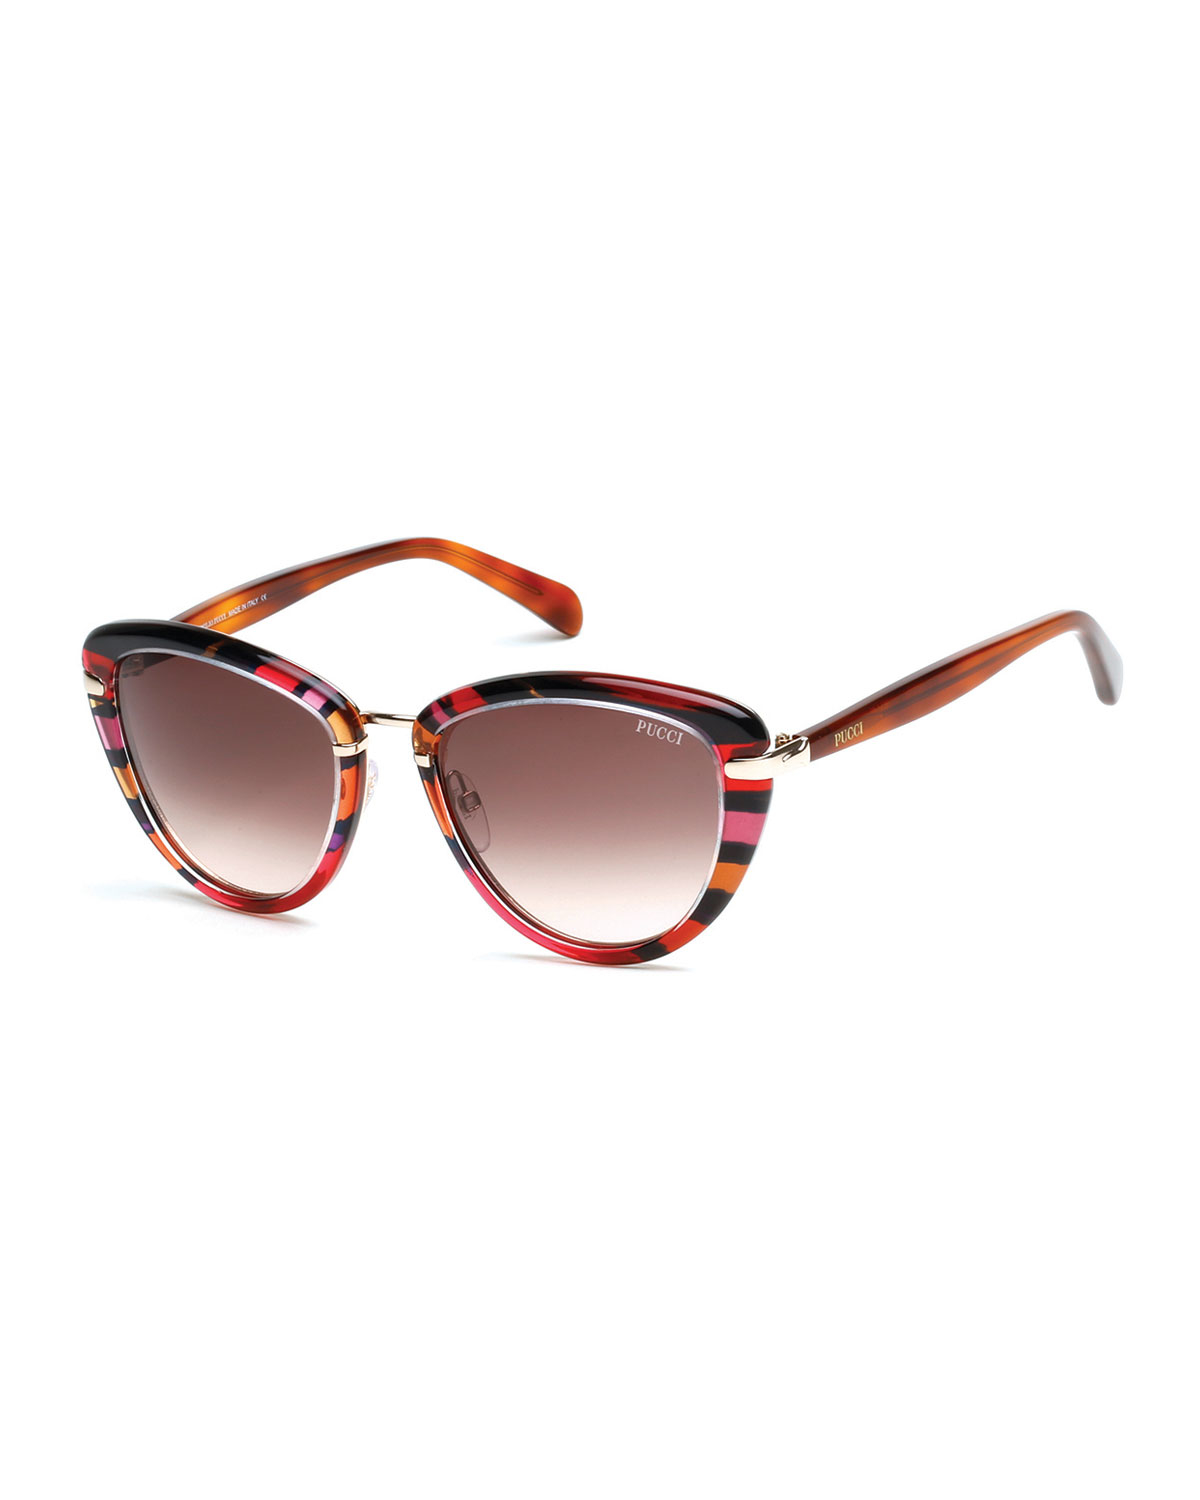 Lyst Emilio Pucci Large Printed Cat Eye Sunglasses In Red